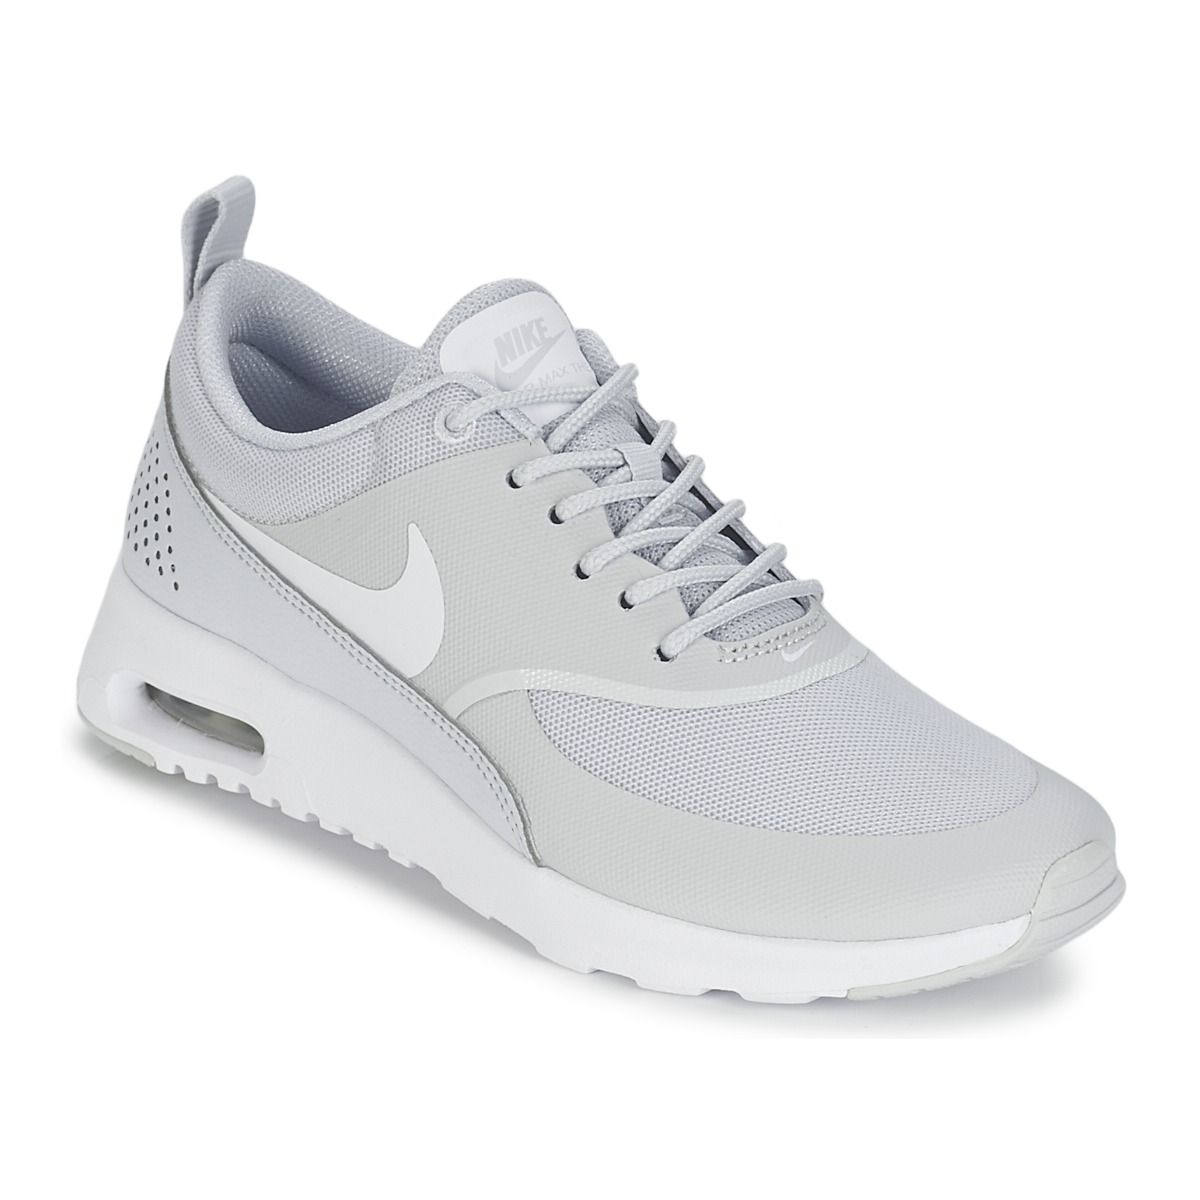 wholesale dealer ce549 e5cc8 Baskets basses Nike AIR MAX THEA W Gris prix promo Baskets Femme Spartoo  119.00 €